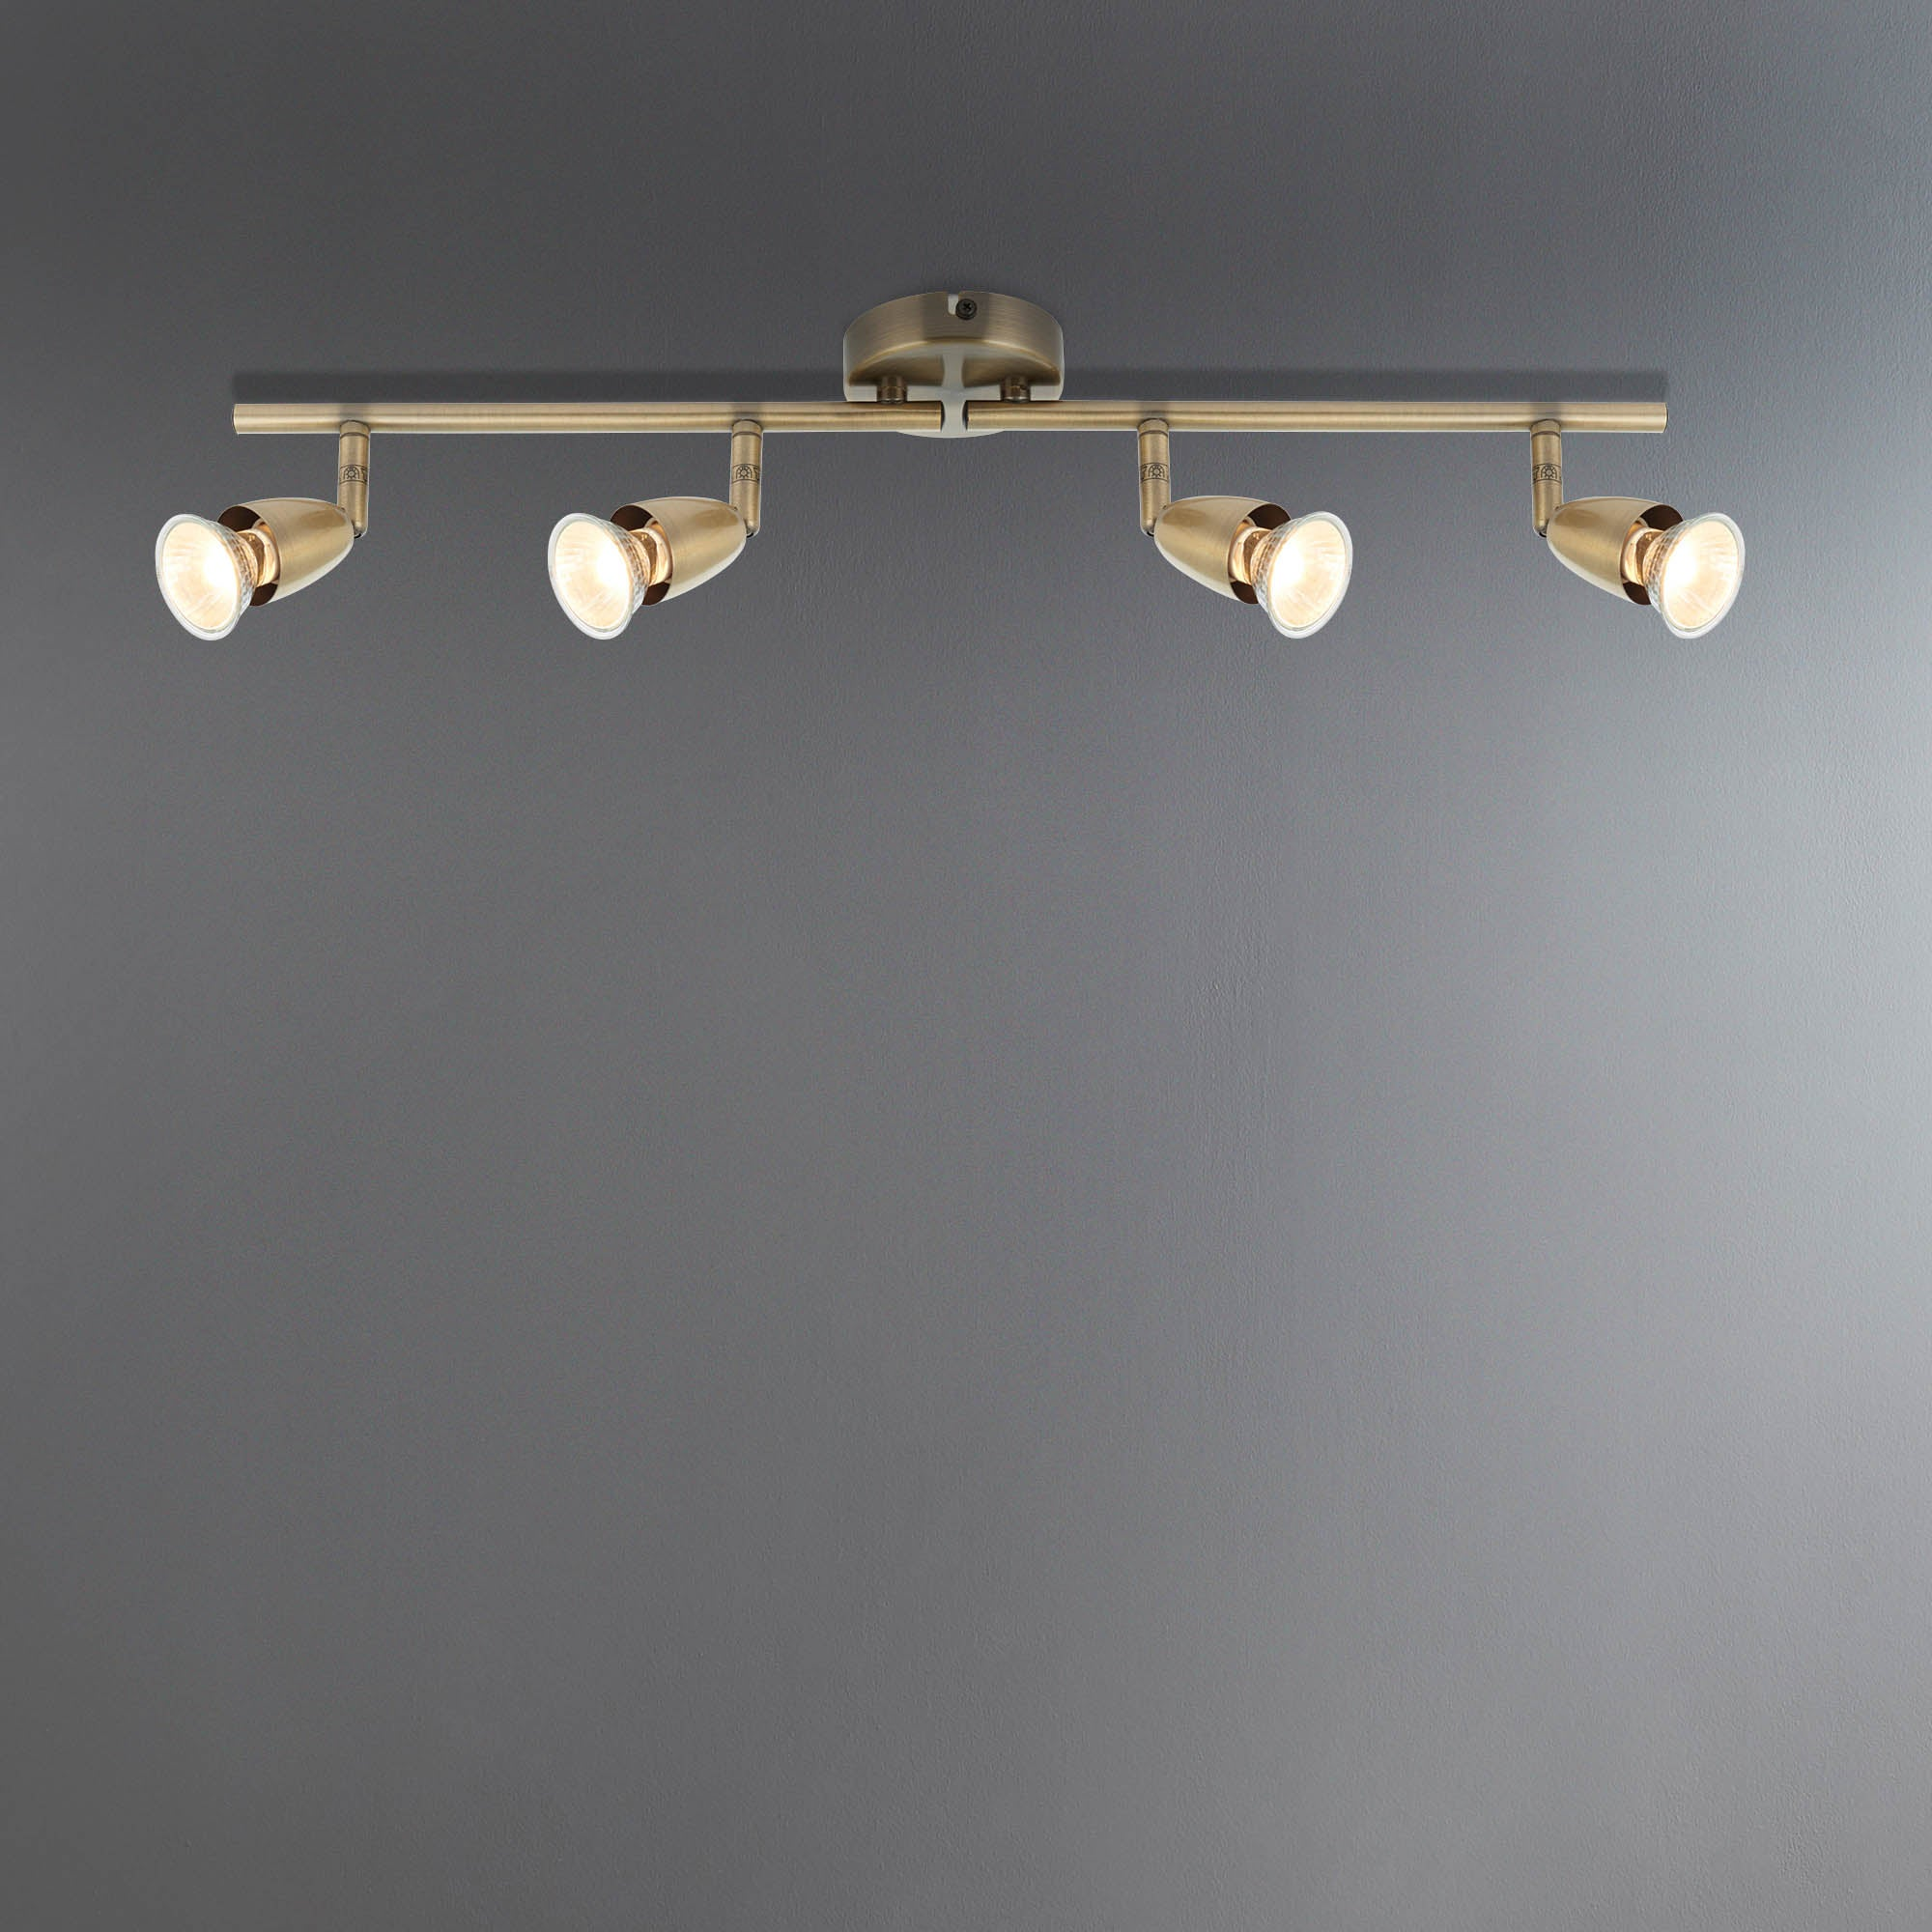 Ameno Brass 4 Light Spotlight Bar Antique Brass